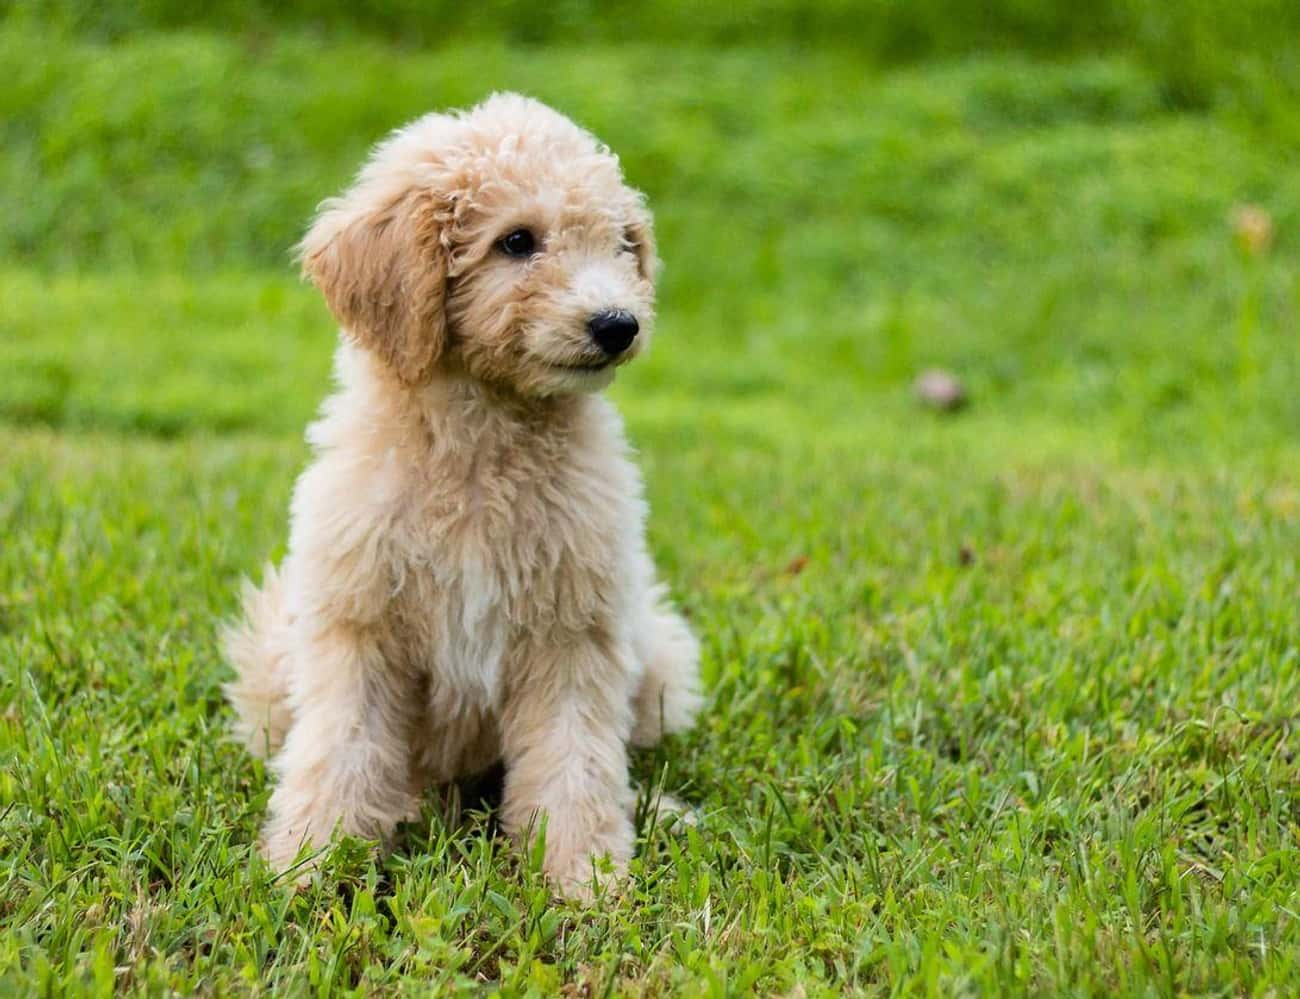 Doodles is listed (or ranked) 4 on the list The Cutest Mixed Dog Breeds